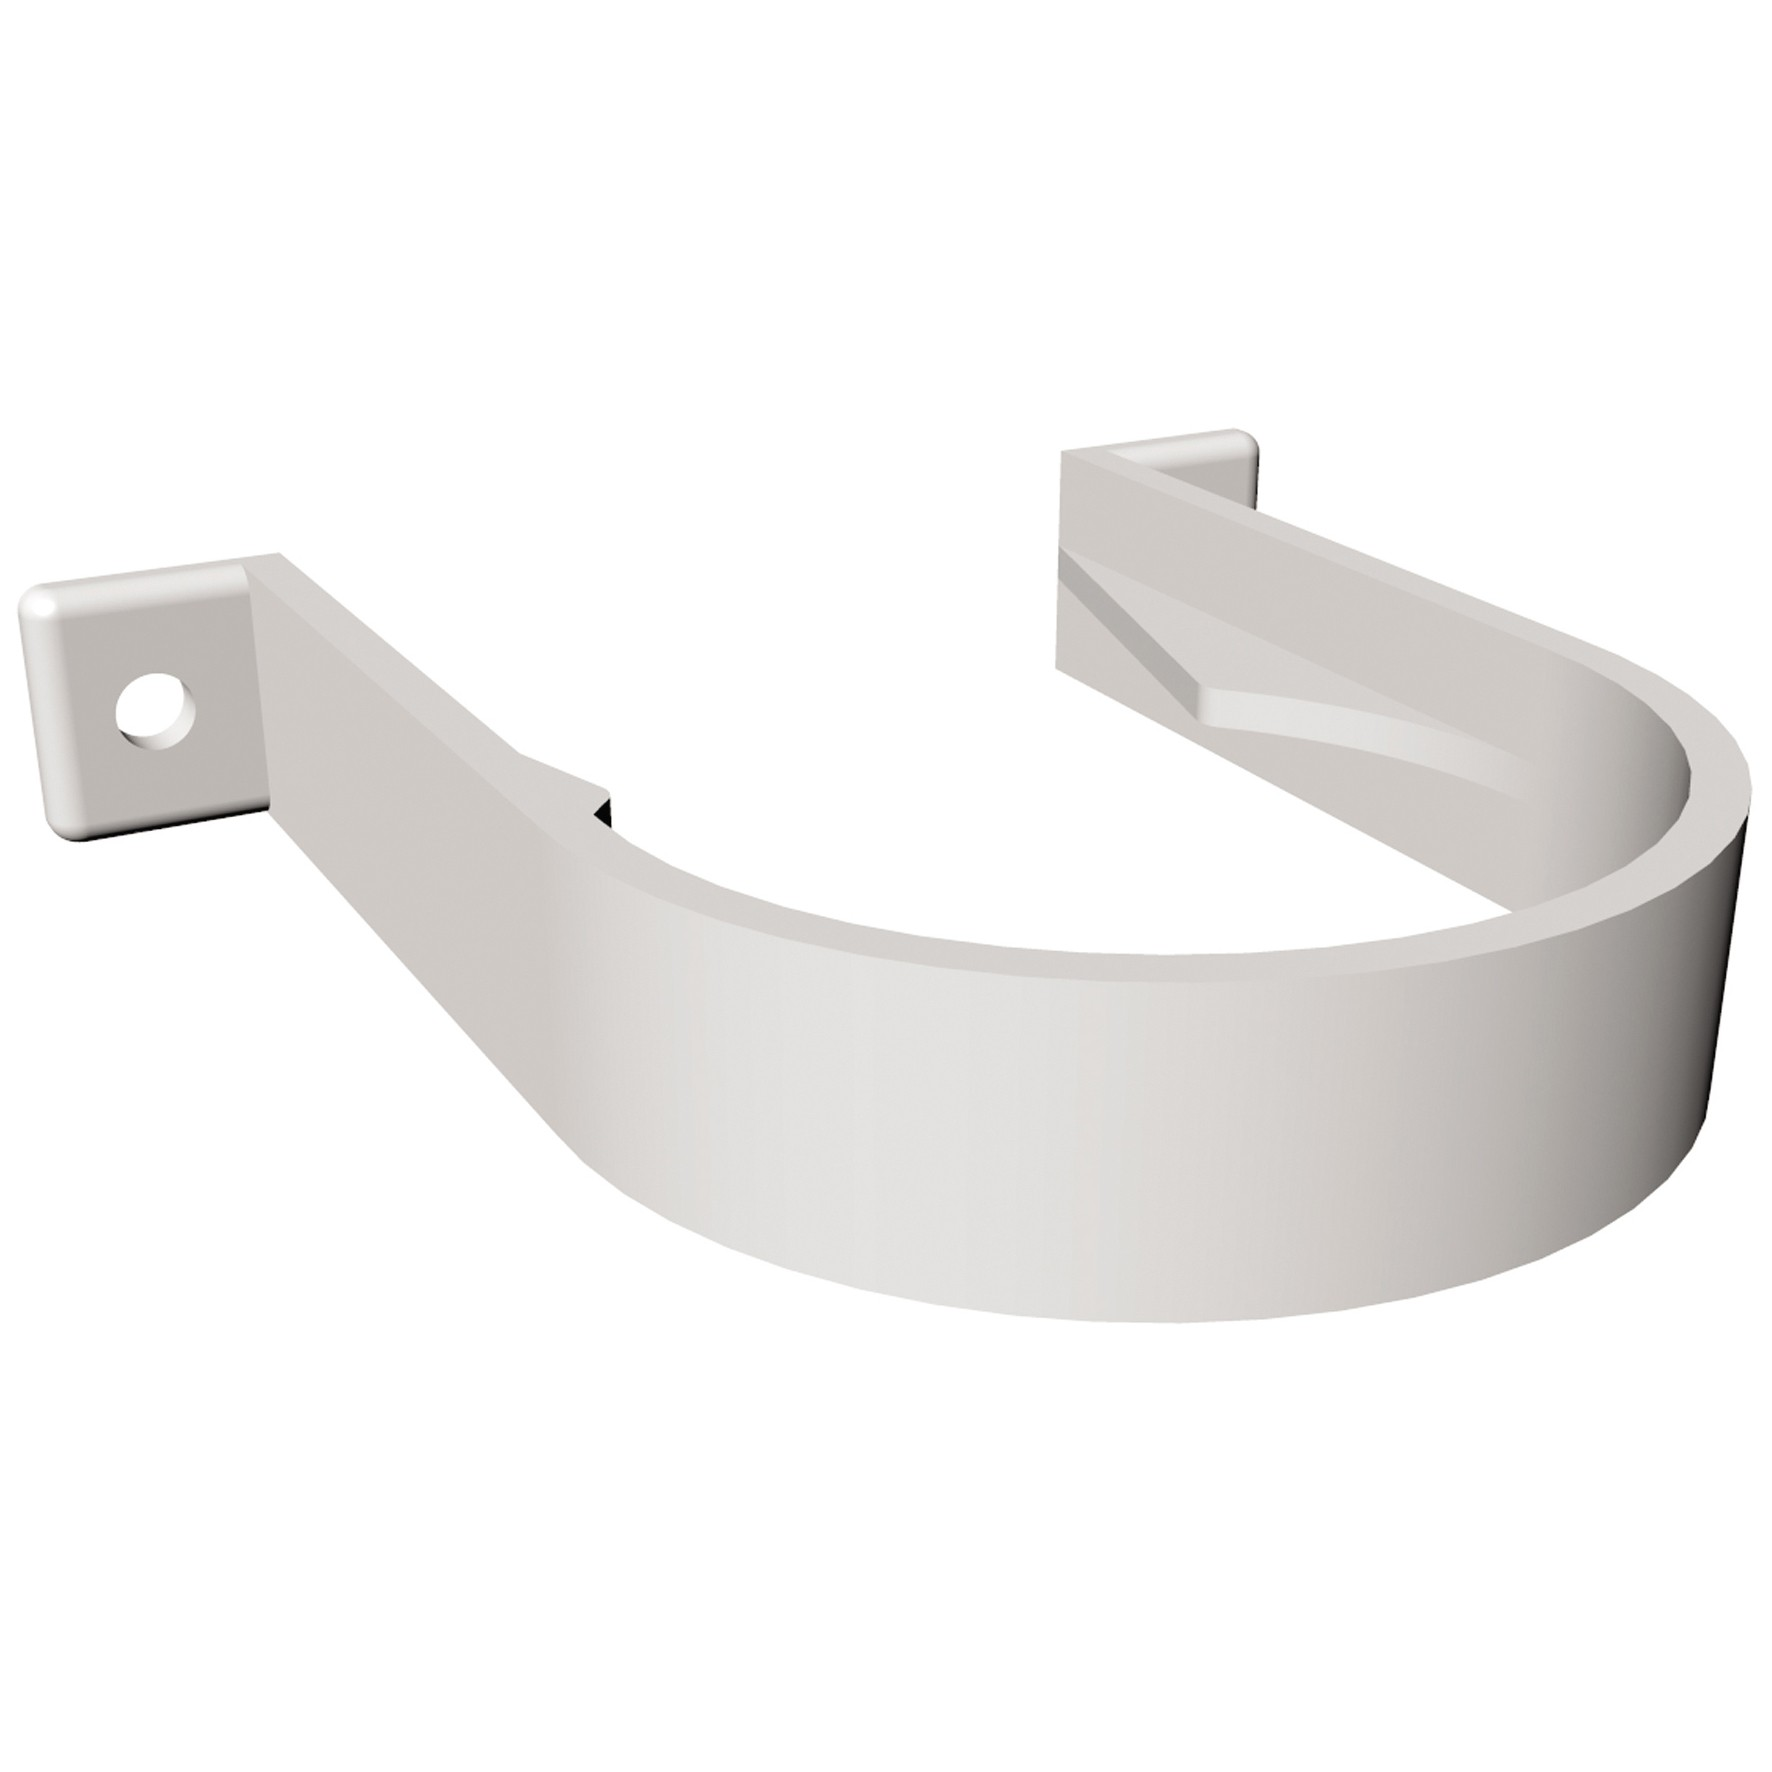 Freeflow 68mm Round Down Pipe Clip (Standard) - White